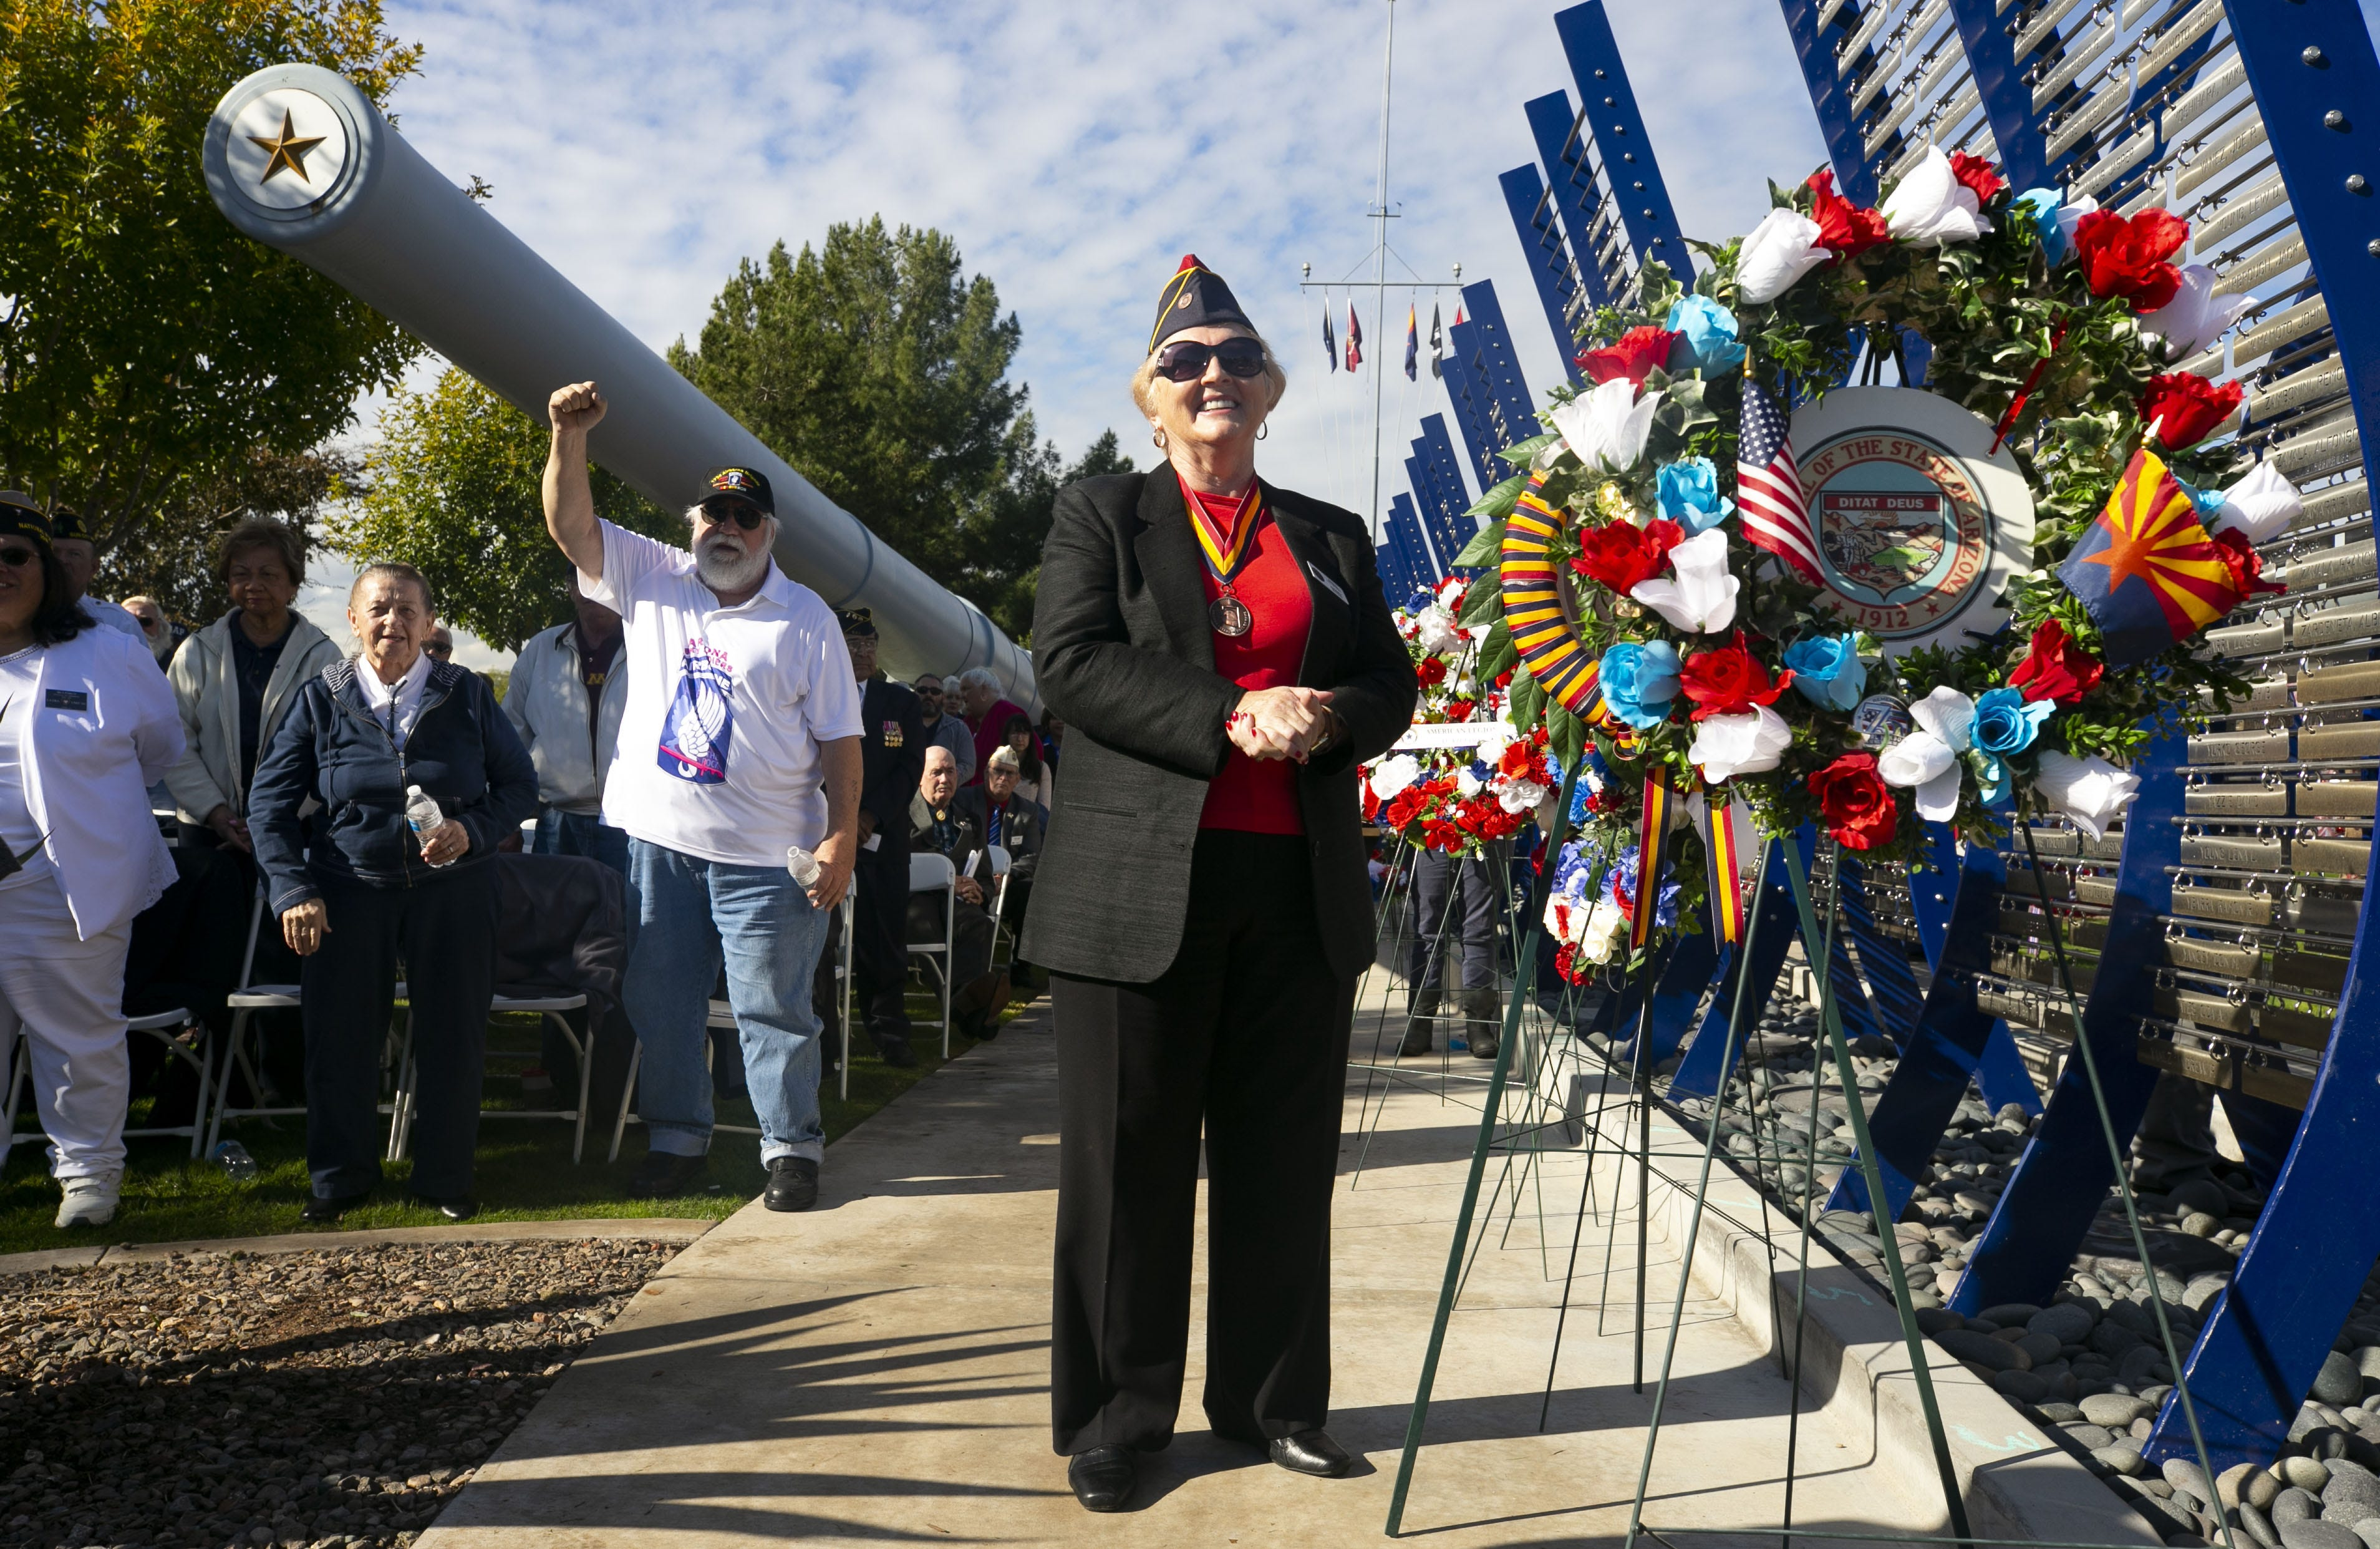 Gerry Berger, vice-president of the Arizona Veterans Hall of Fame, stands during a Pearl Harbor Remembrance Day event at Wesley Bolin Plaza in Phoenix on the 77th anniversary of the attack on Pearl Harbor, on Dec. 7, 2018.